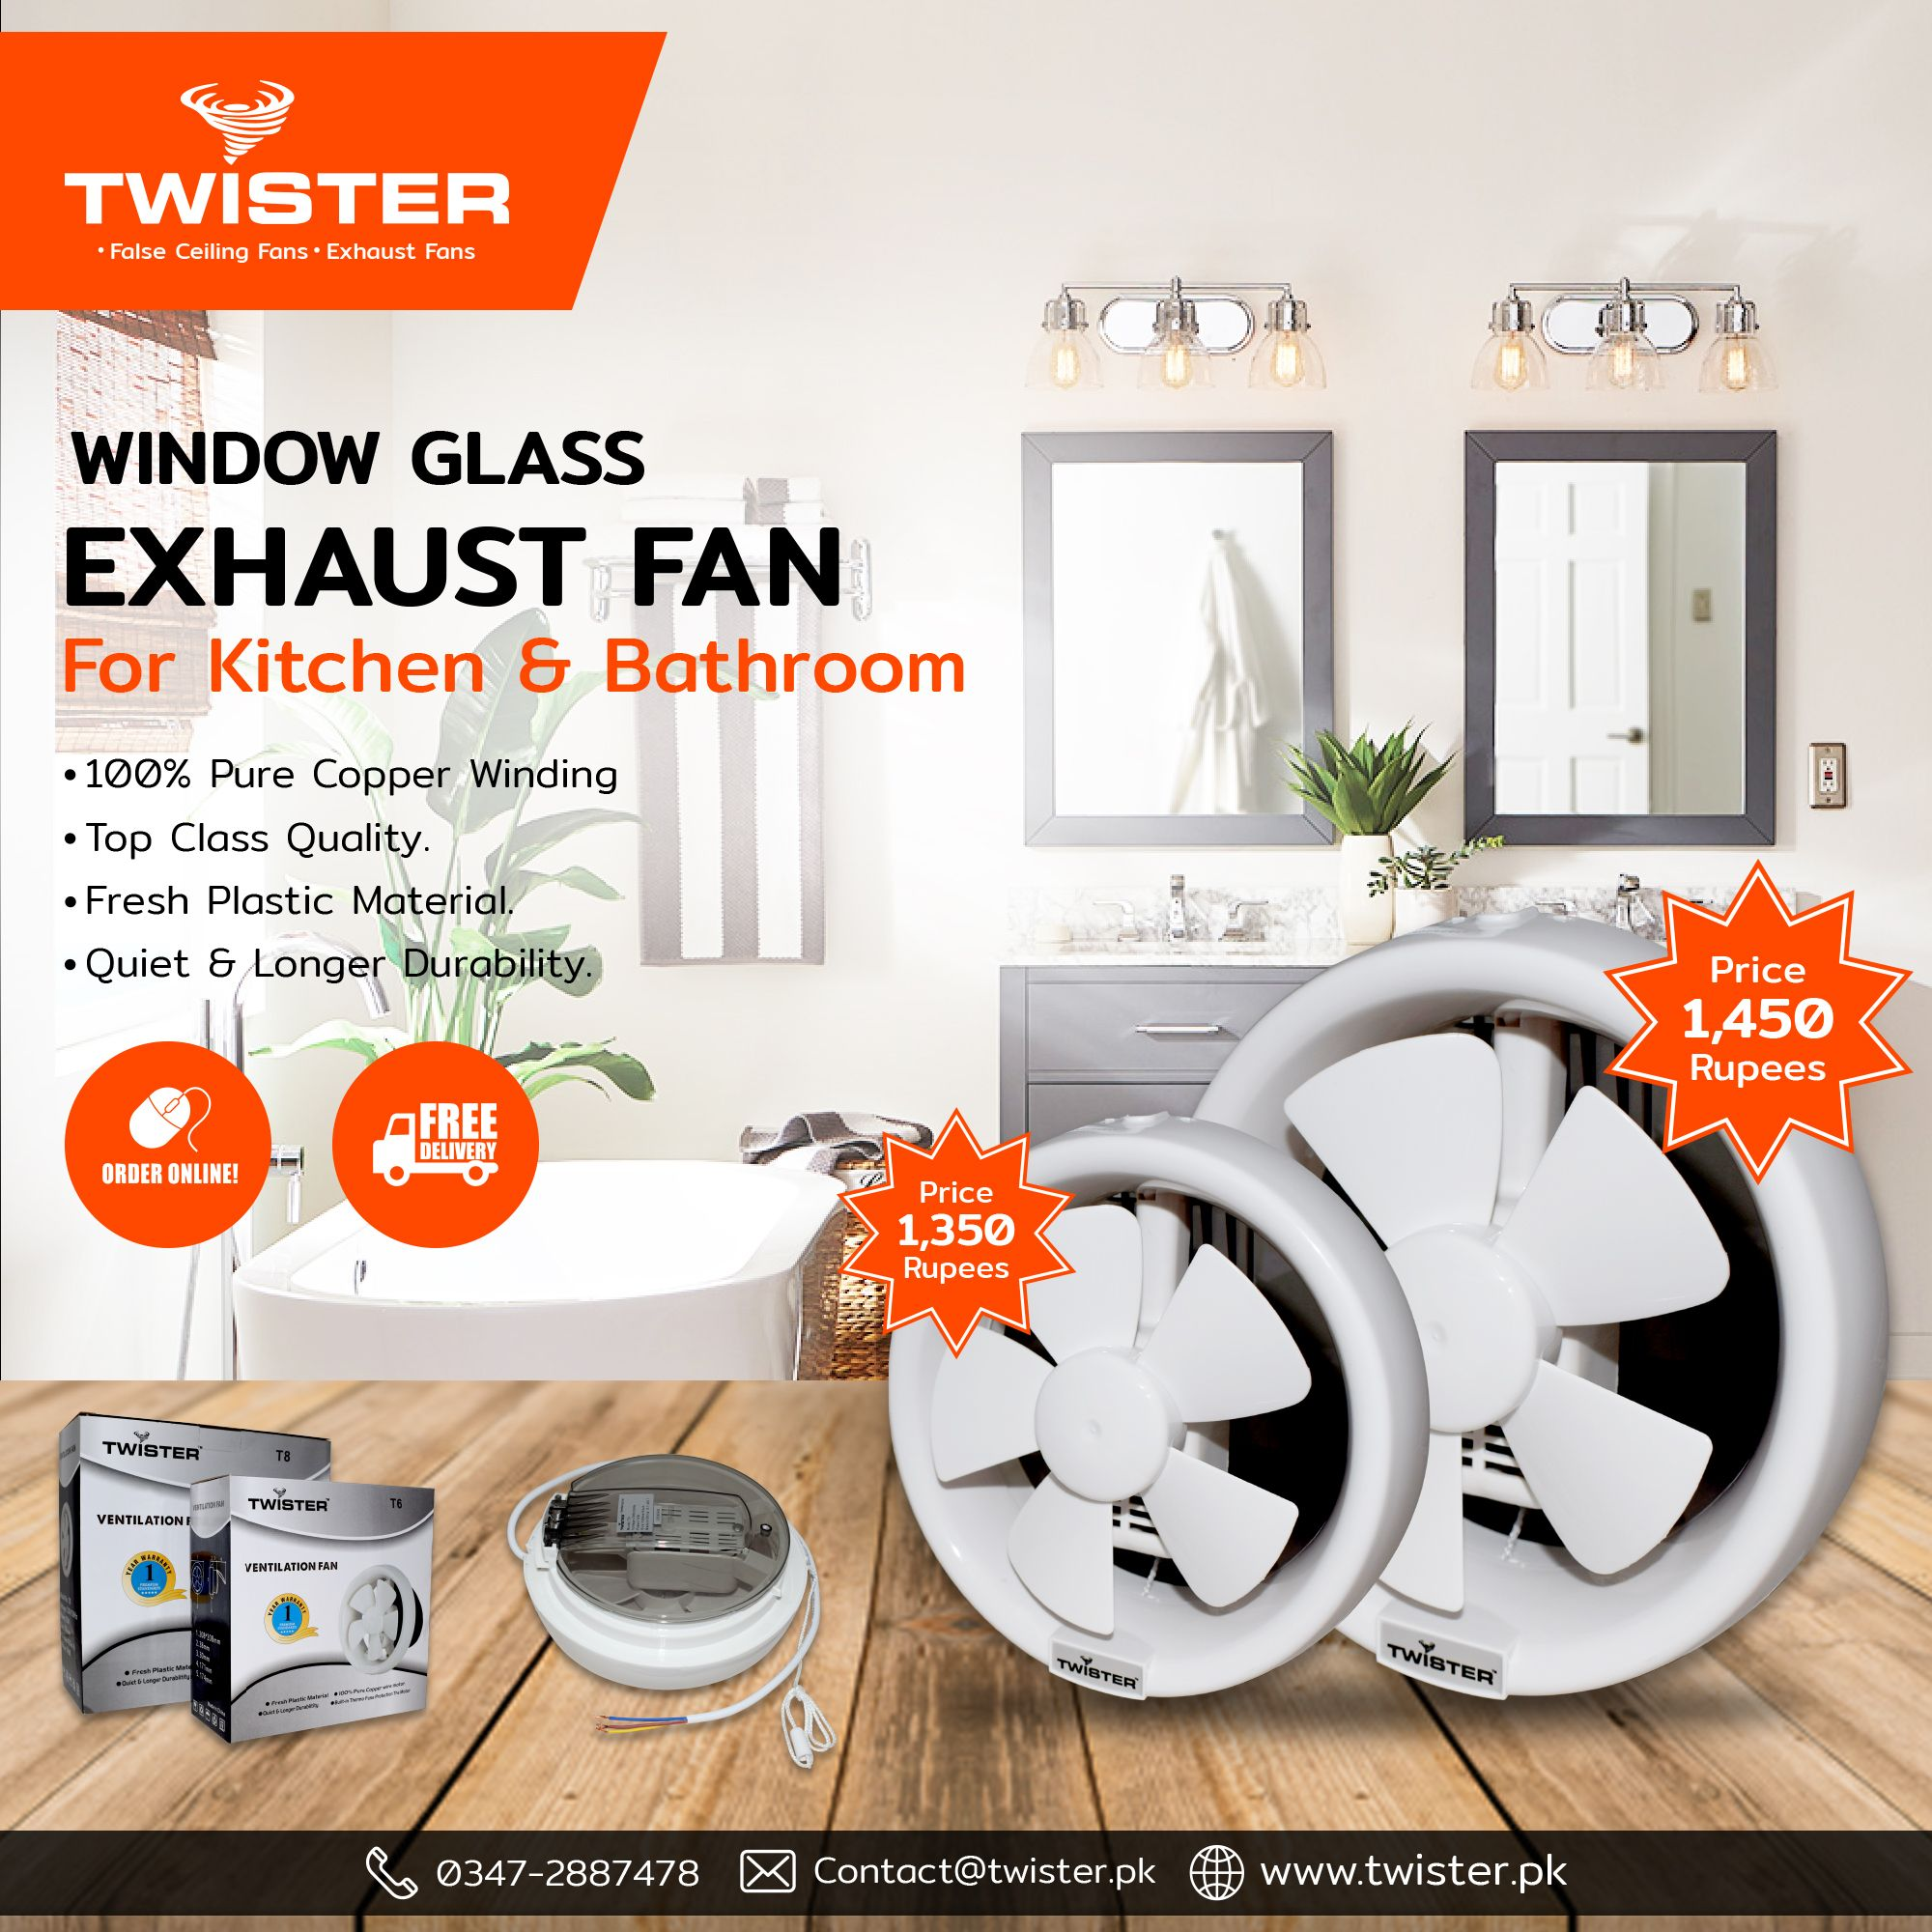 Twister Exhaust Fans 6 Price 1350 8 Price 1450 Free